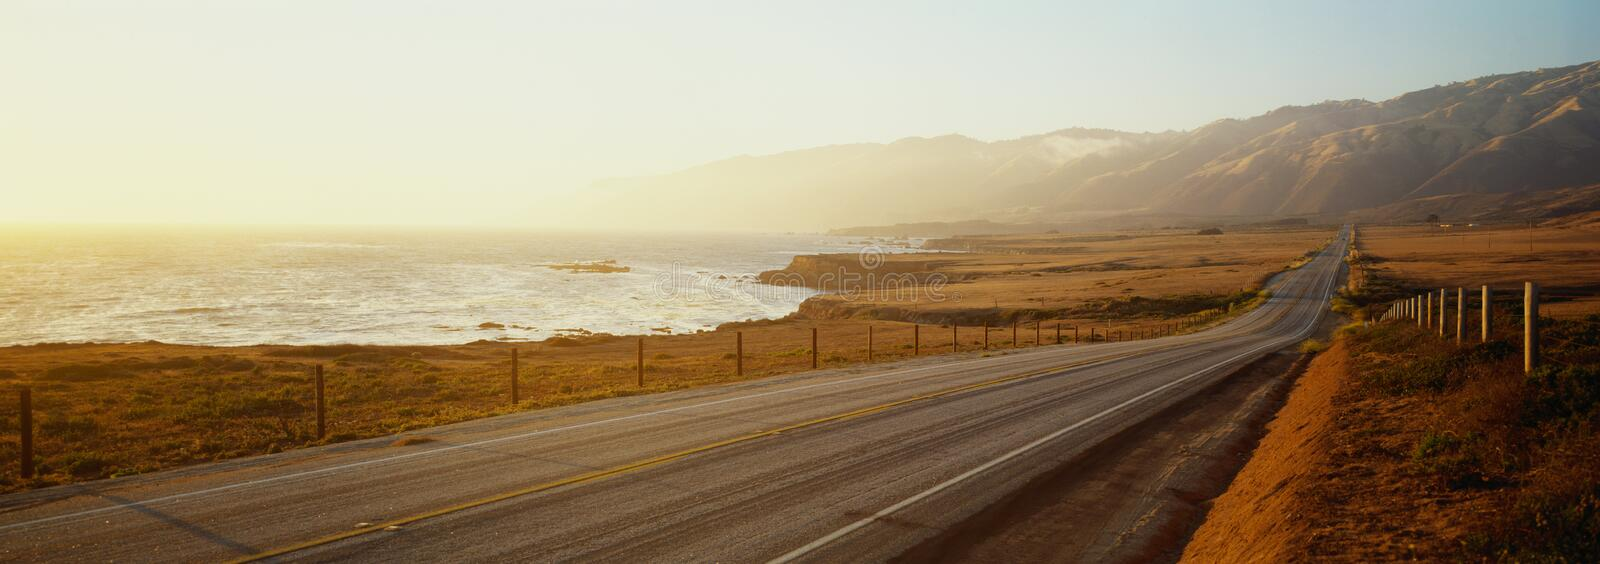 This is Route 1also known as the Pacific Coast Highway. The road is situated next to the ocean with the mountains in the. Distance. The road goes off into stock image